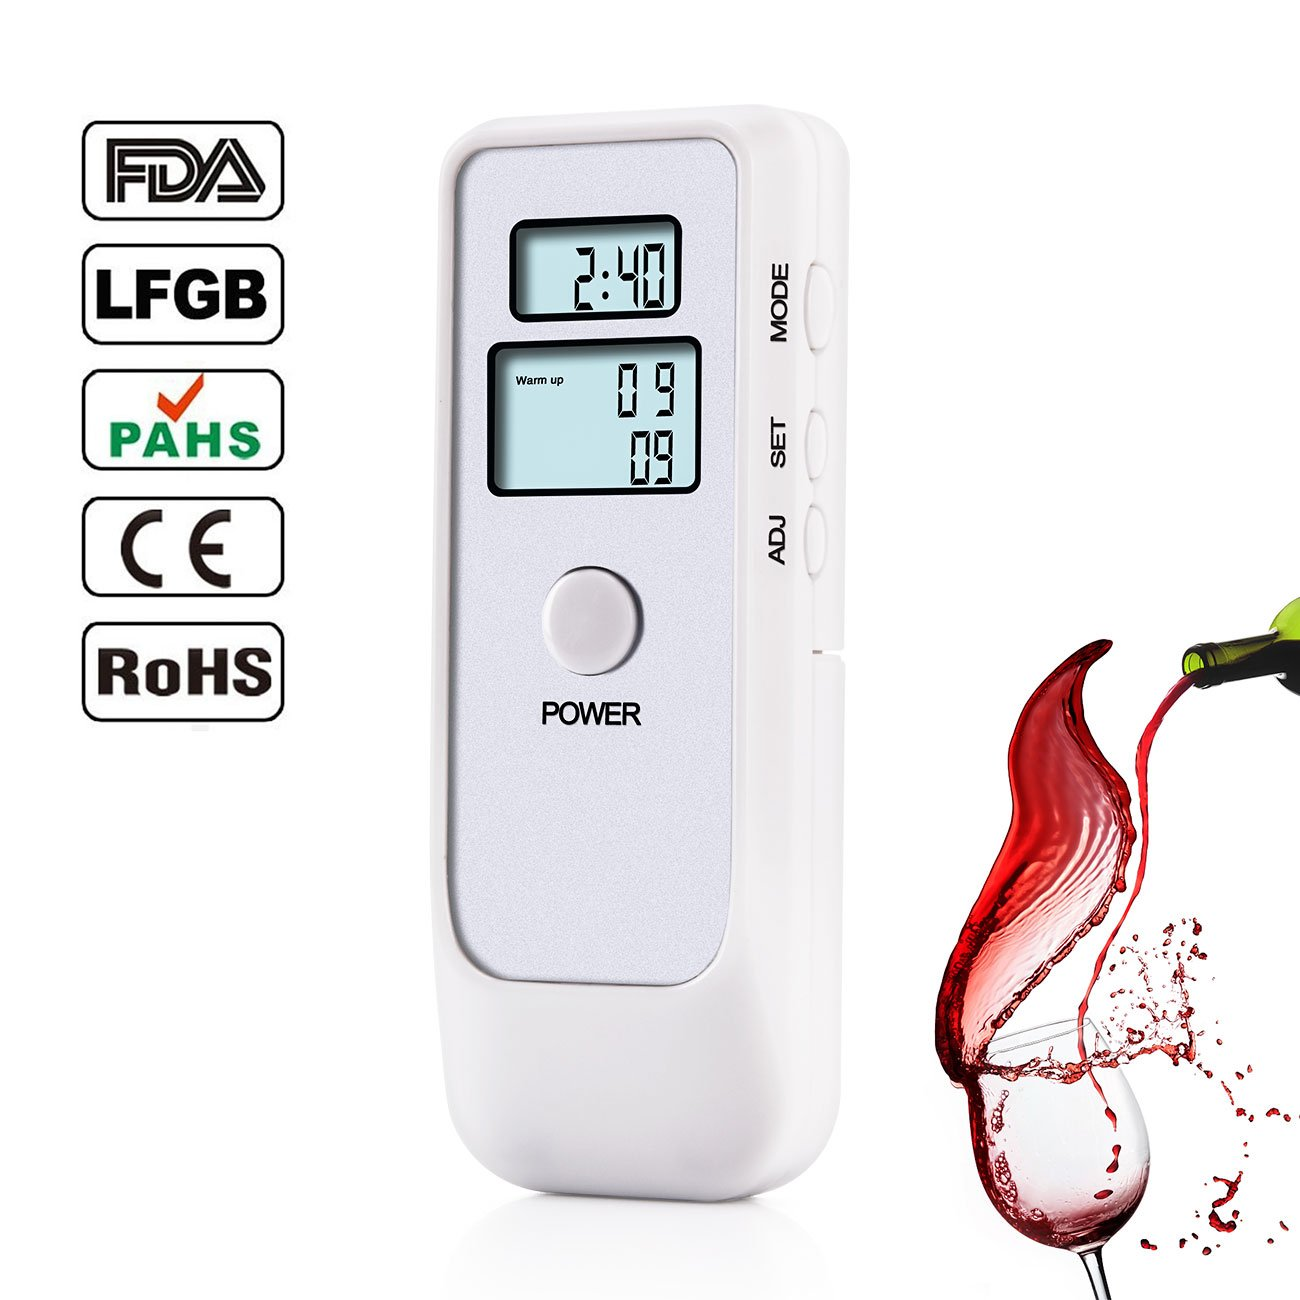 Professional Digital Breathalyzer, FitMaker Portable Breath Alcohol Tester with LCD Screen for Home Use (New White)